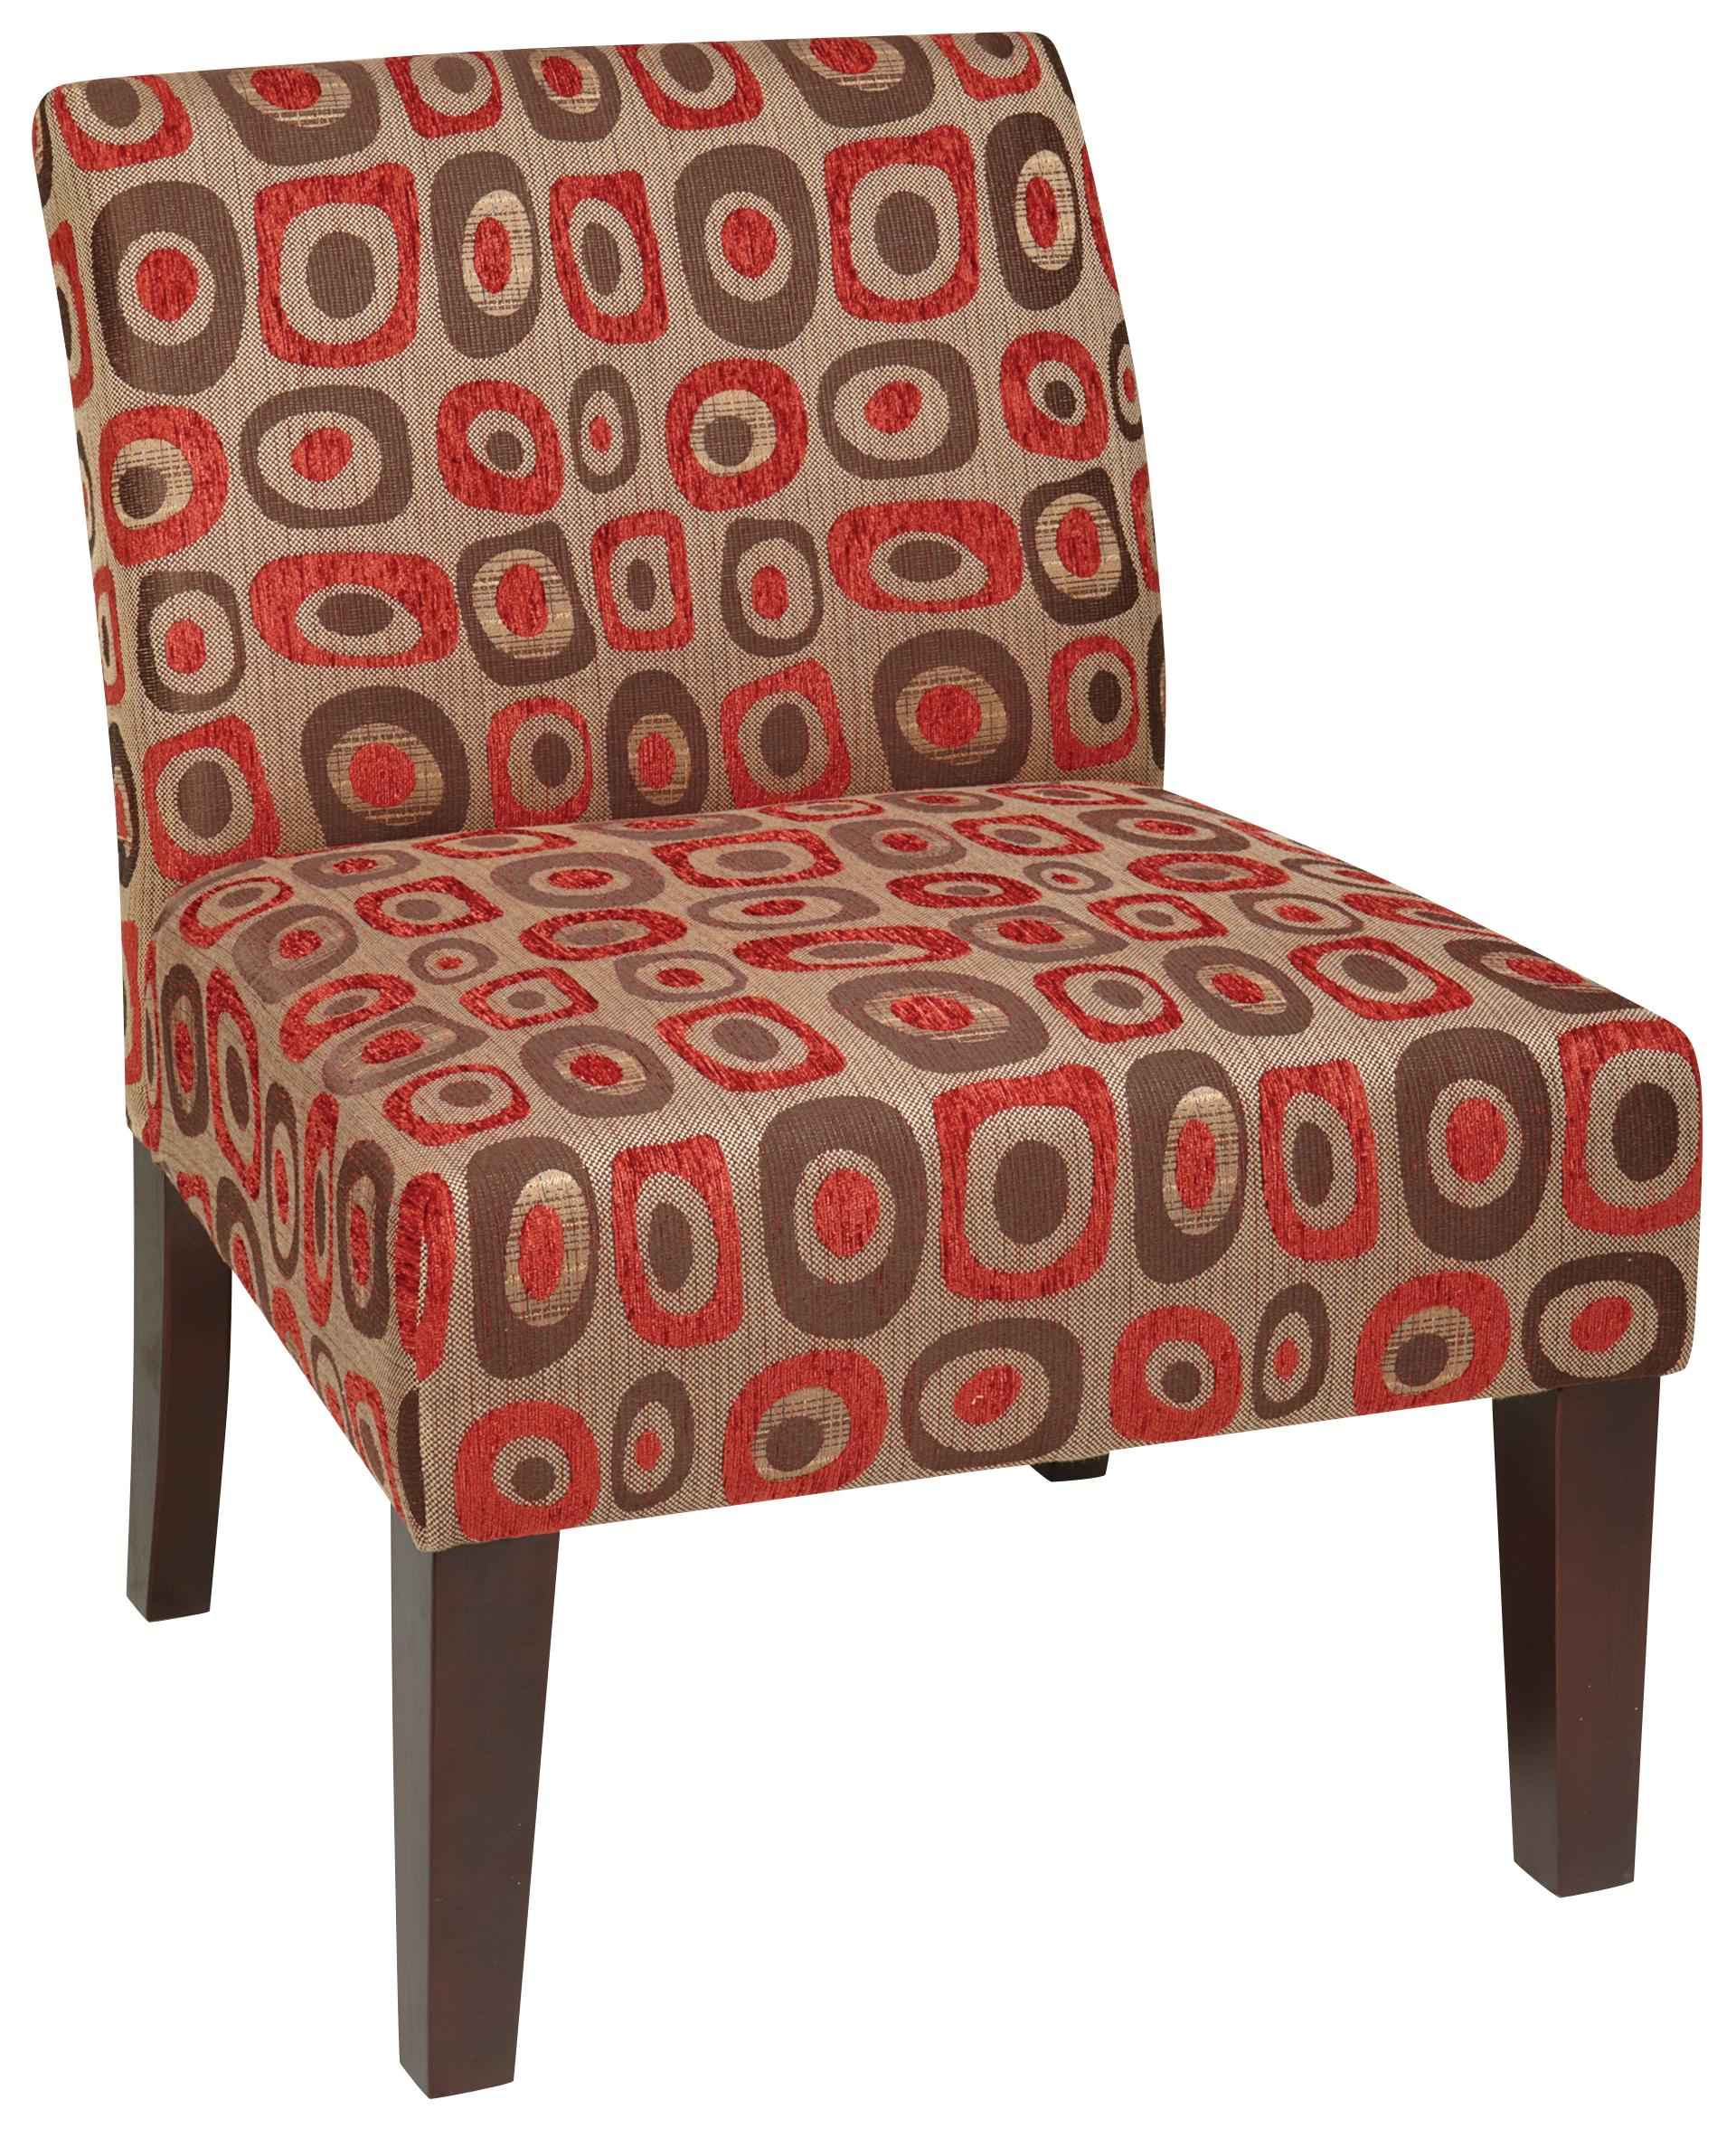 Accent Chairs Laguna Chair at Sadler's Home Furnishings